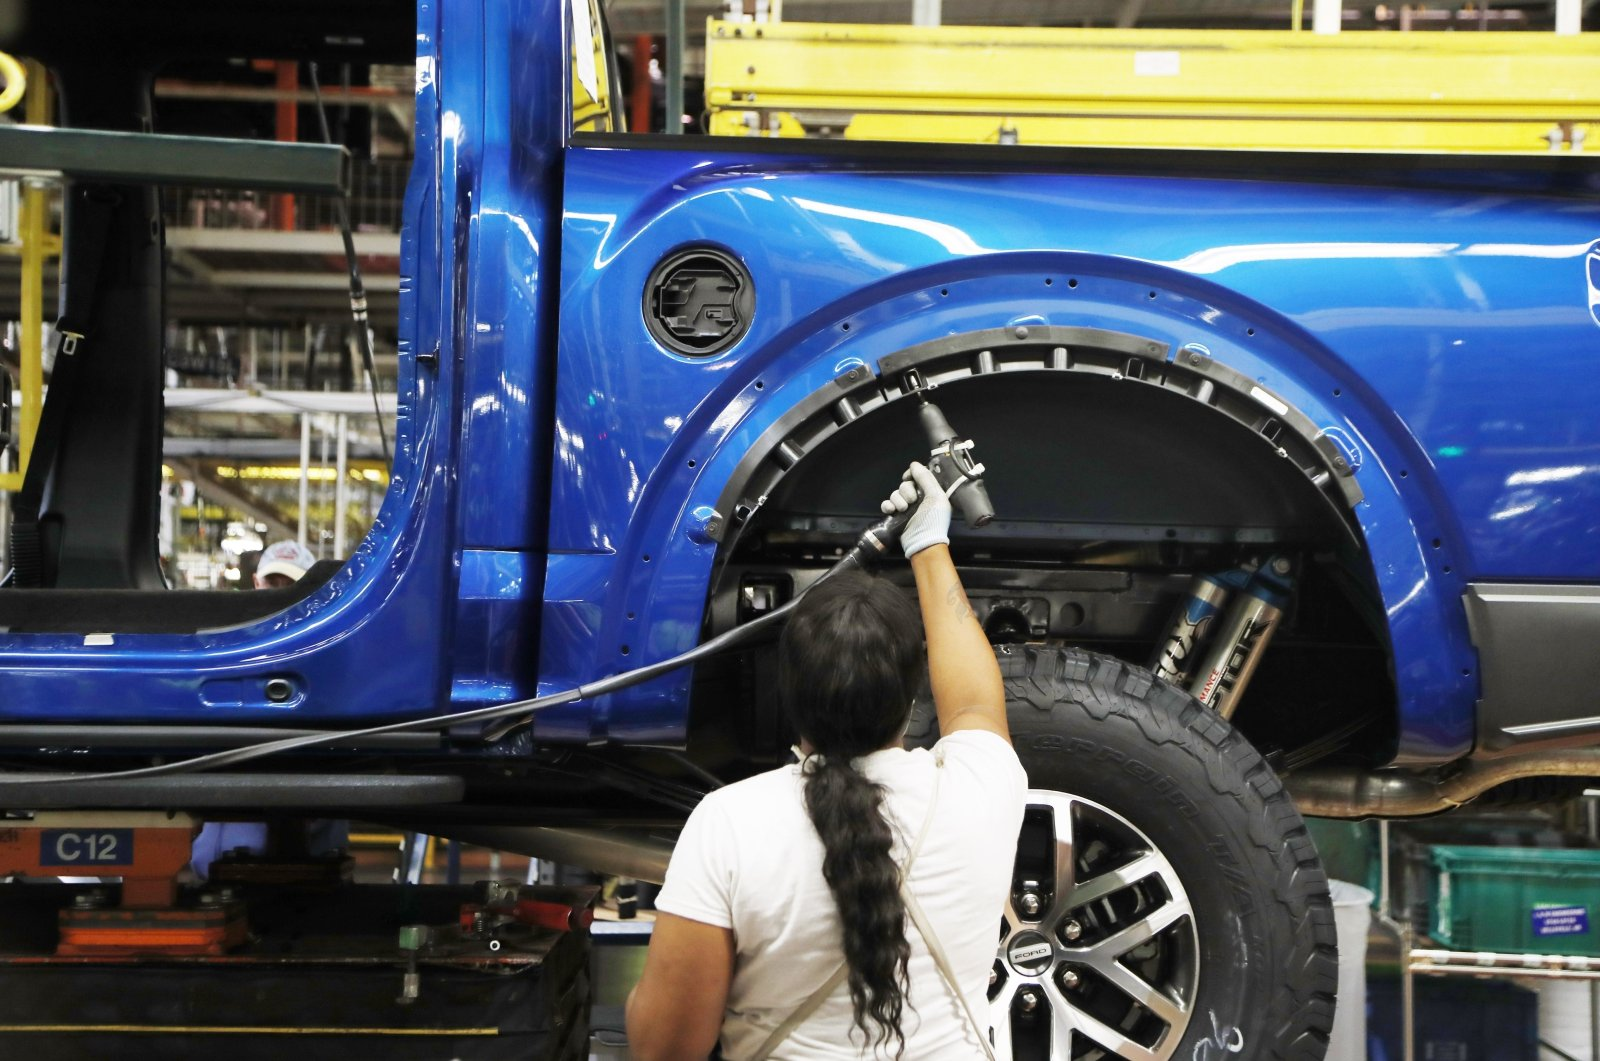 A United Auto Workers assemblyman works on a 2018 Ford F-150 truck being assembled at the Ford Rouge assembly plant in Dearborn, Michigan, Sept. 27, 2018. (AP Photo)